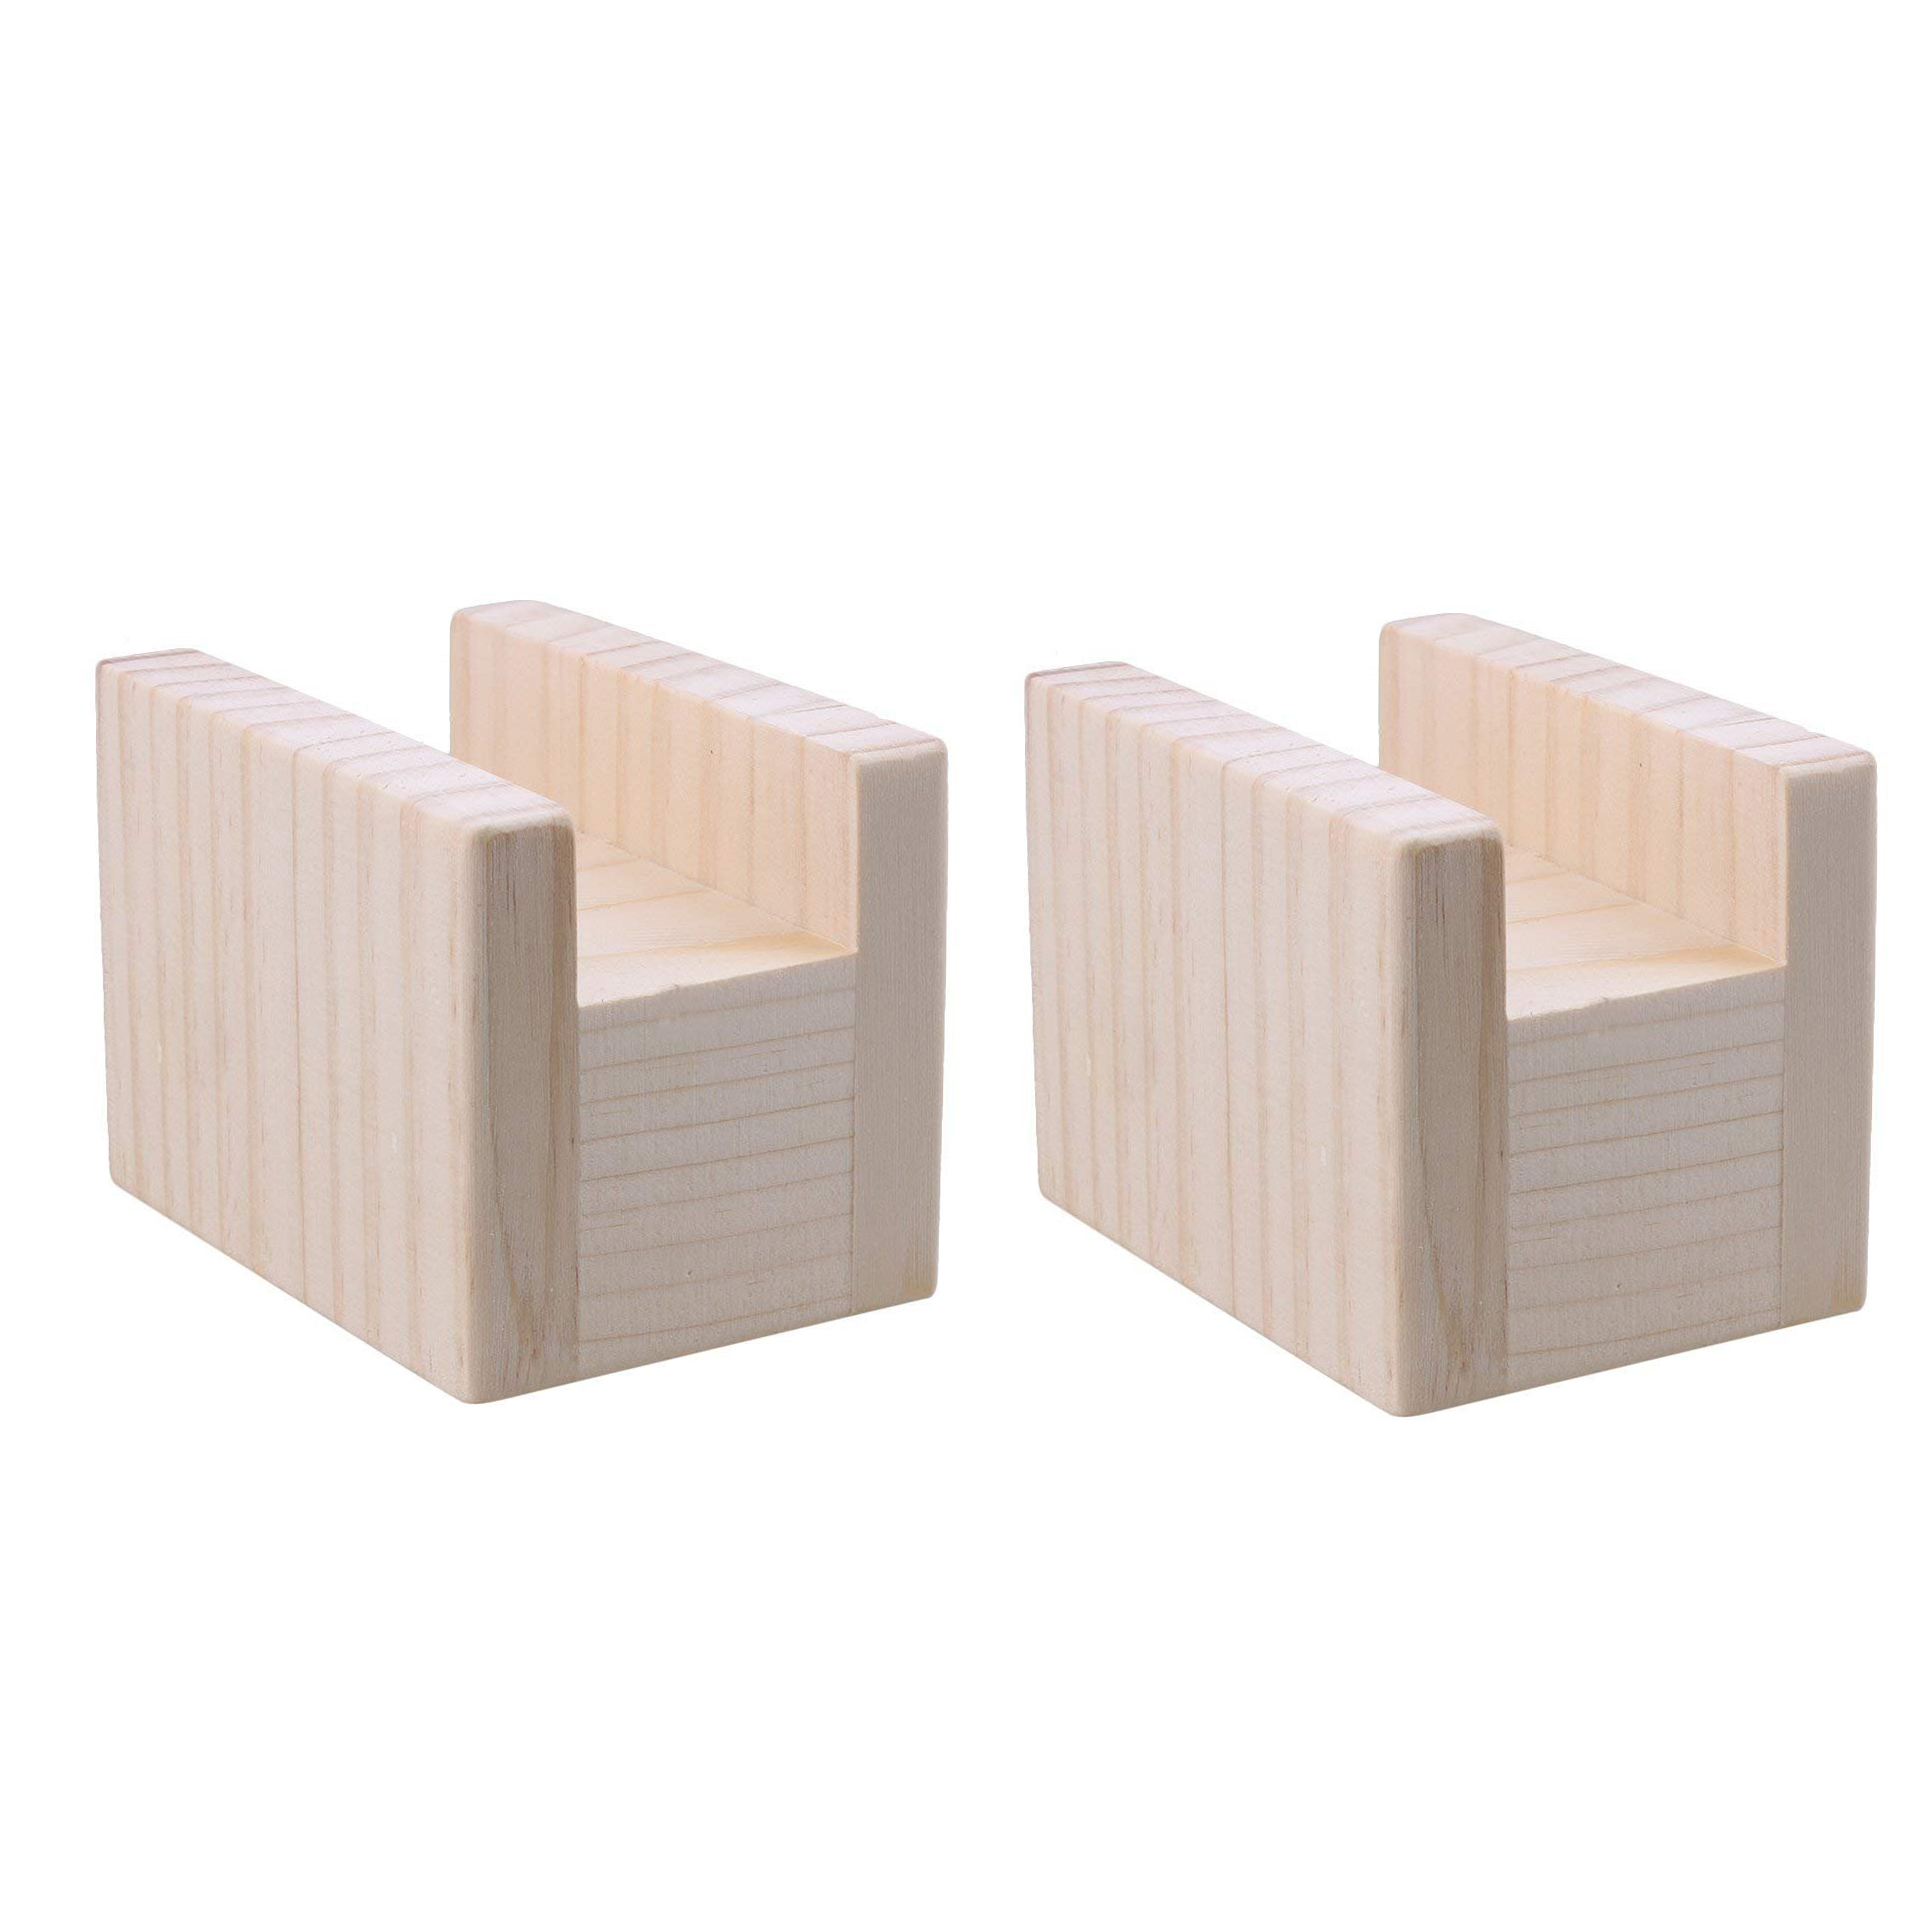 2pcs Wooden Furniture Lifter Table Storage 10x5x8.5cm for Sofa Dressers Bed